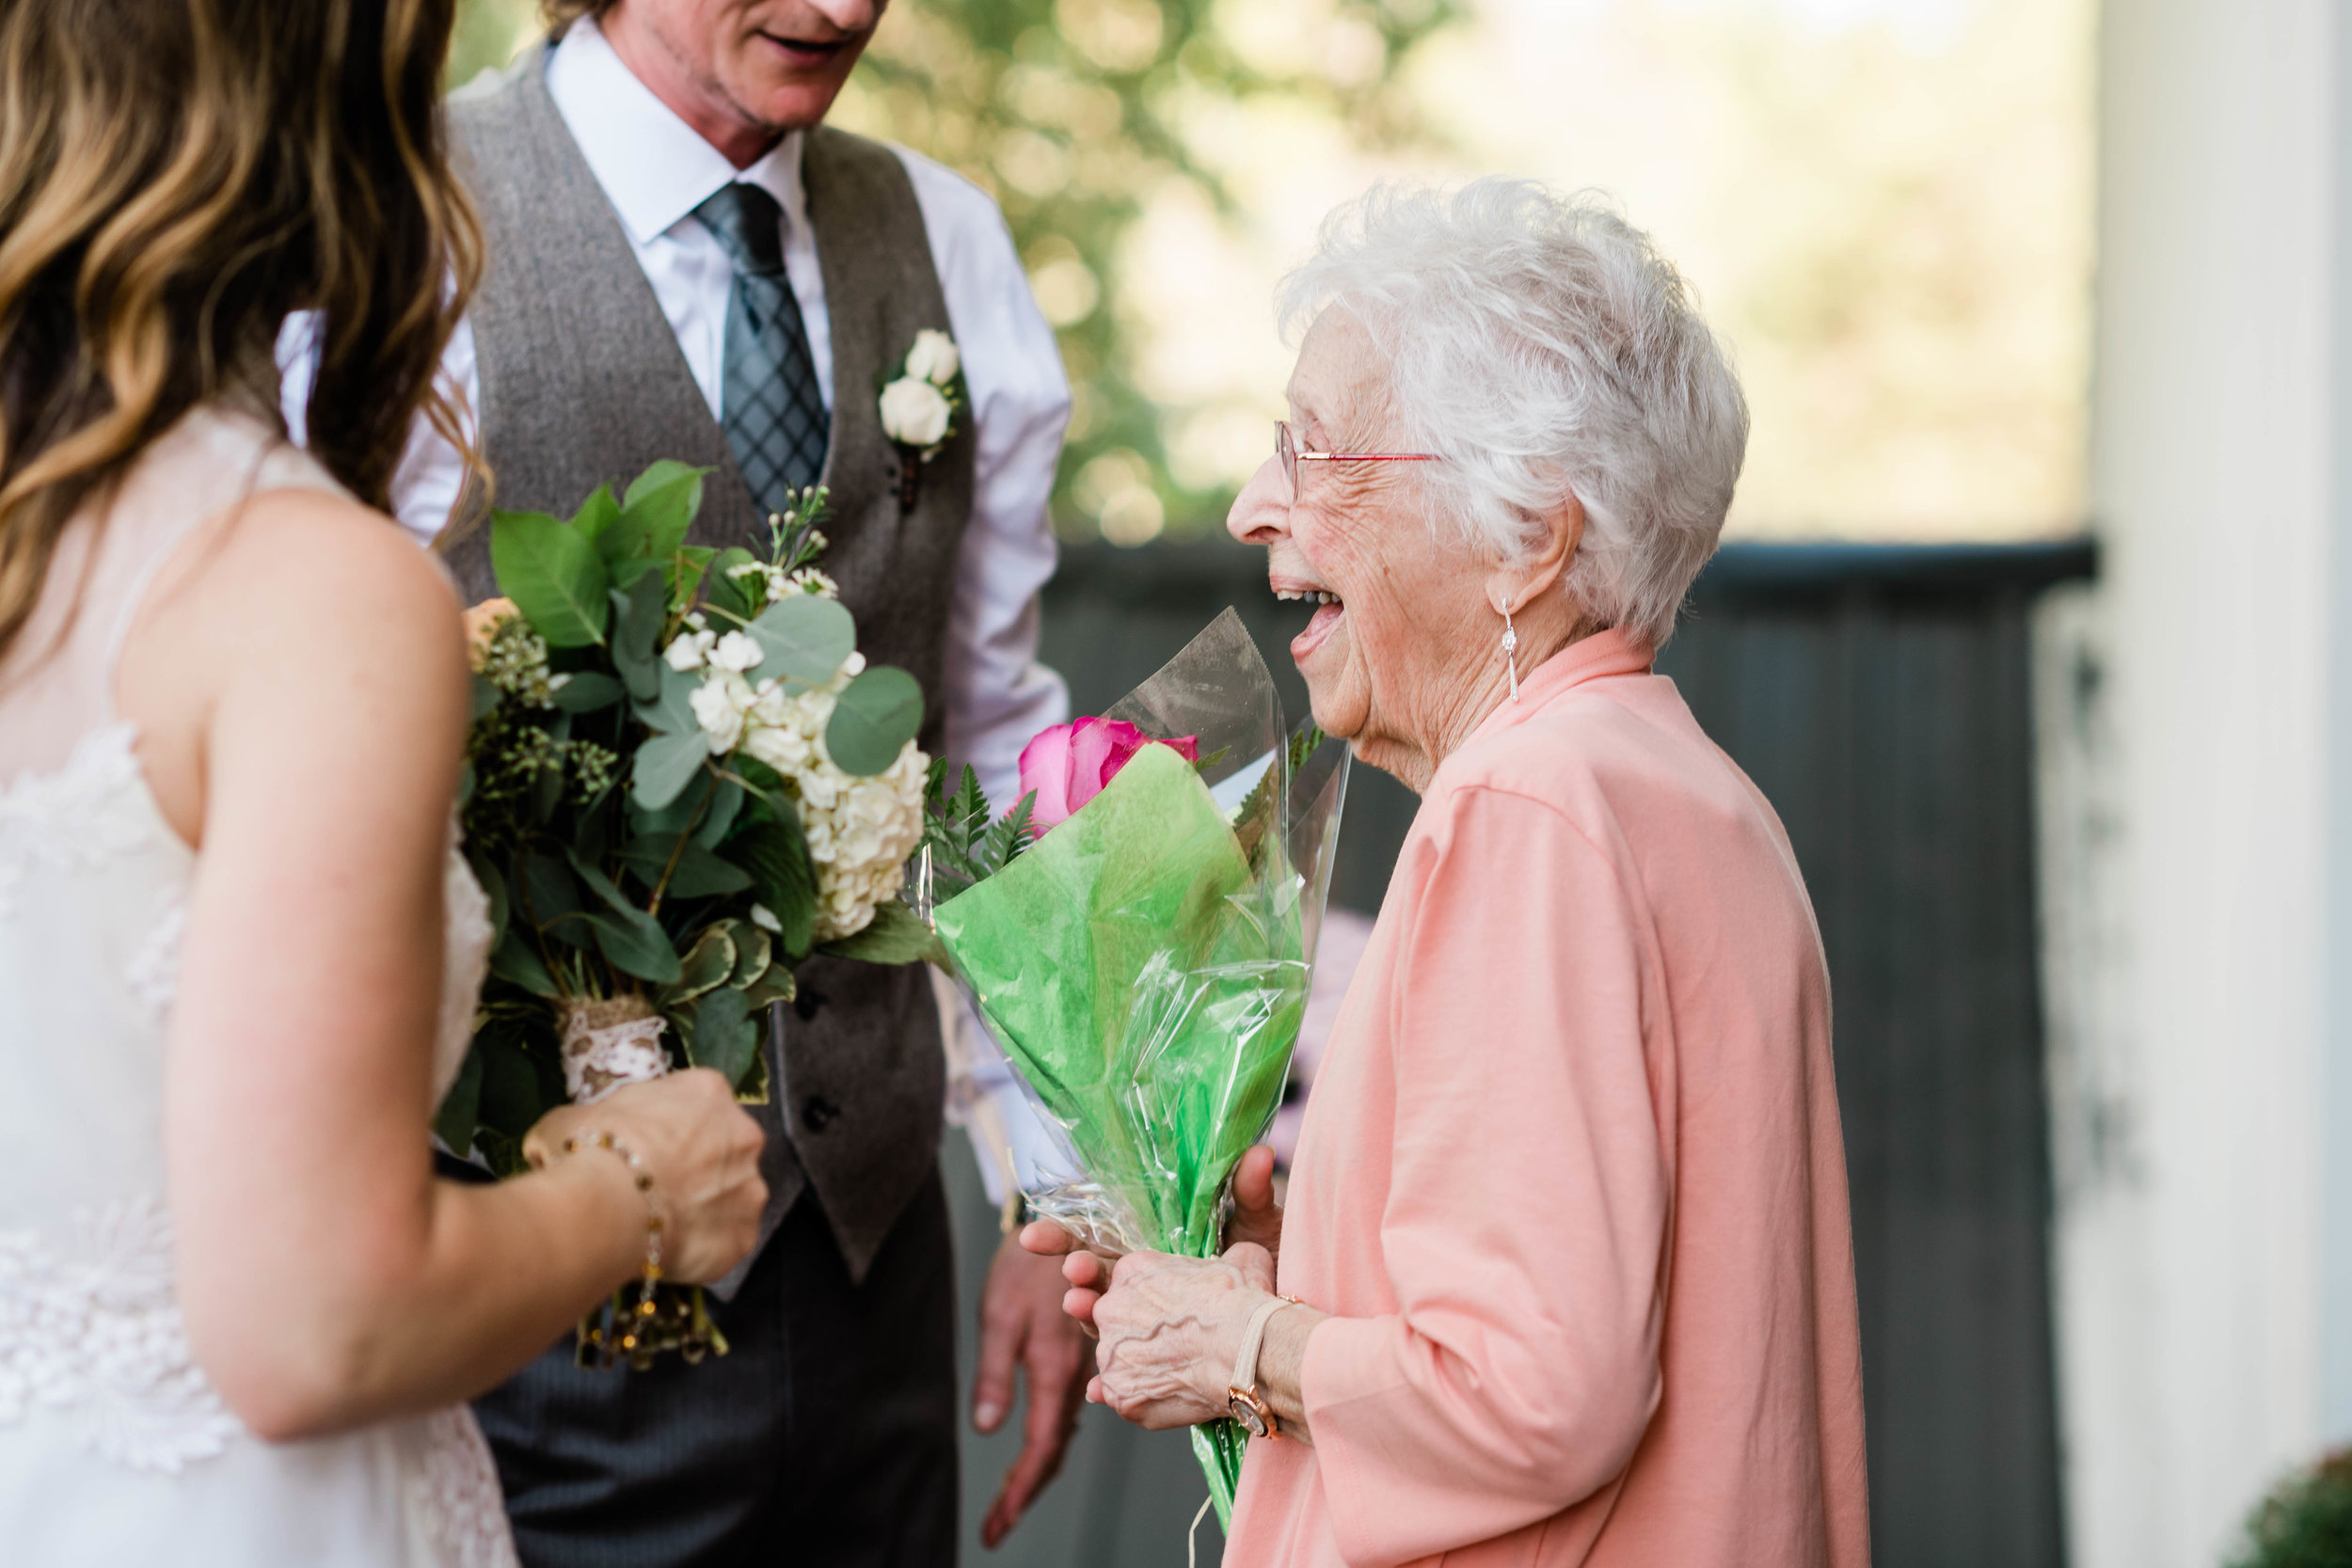 Grandma laughing with bride and groom